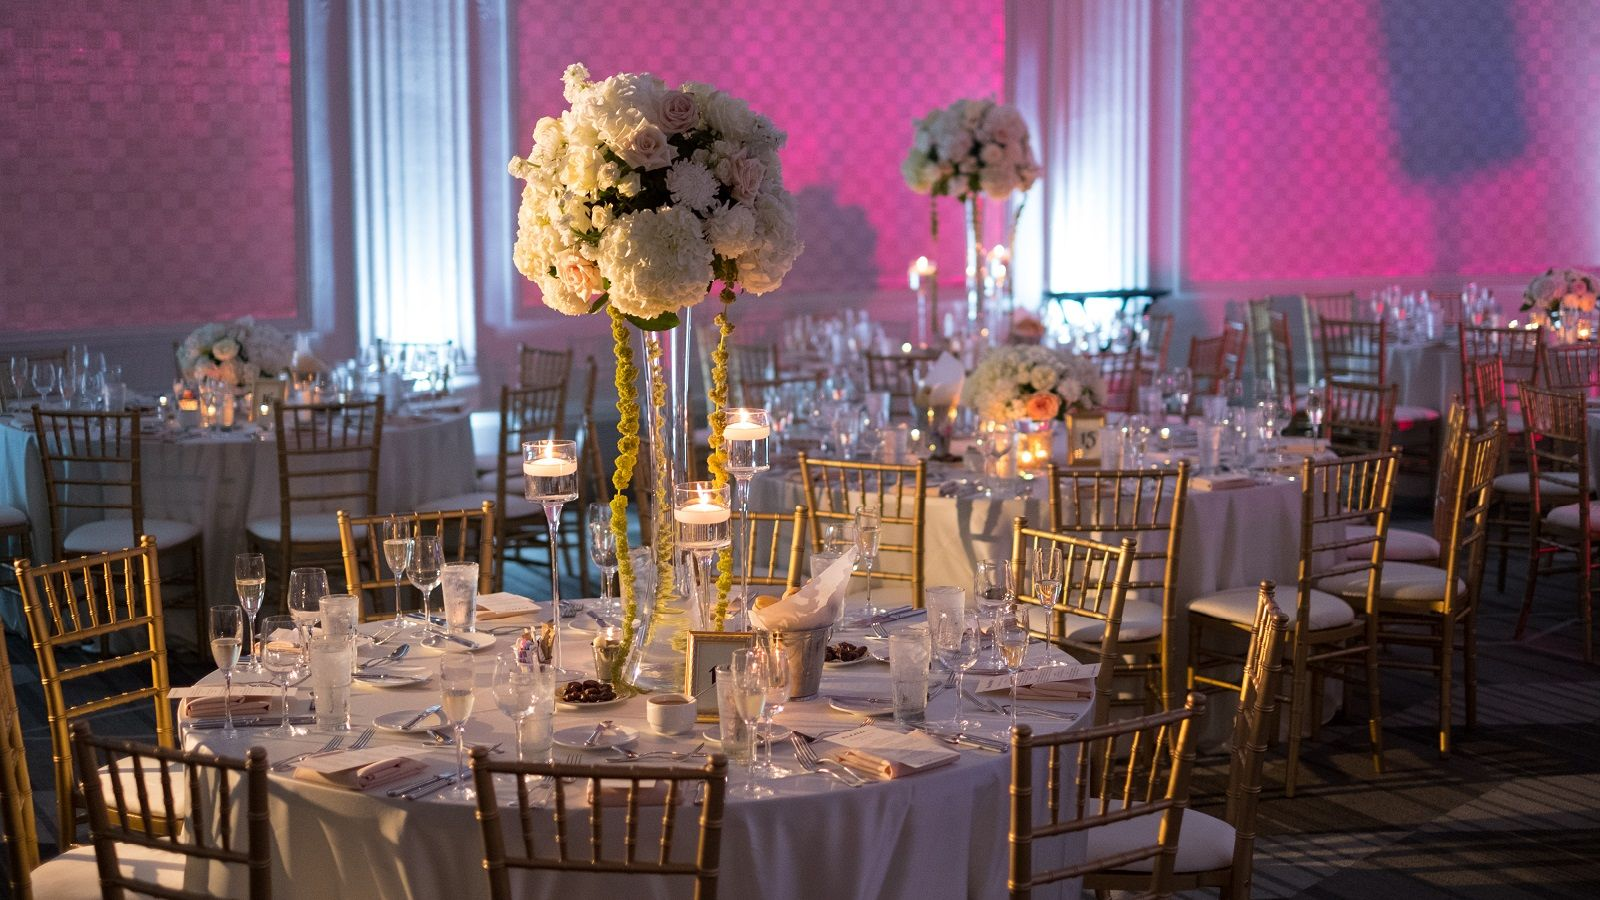 W Chicago- City Center venues, real-weddings, general, destination-weddings-honeymoons  Wedding Trends, Wedding Tips, Tat's Tips, Advice, #weddingsalon  W Chicago Wedding   W Chicago- City Center